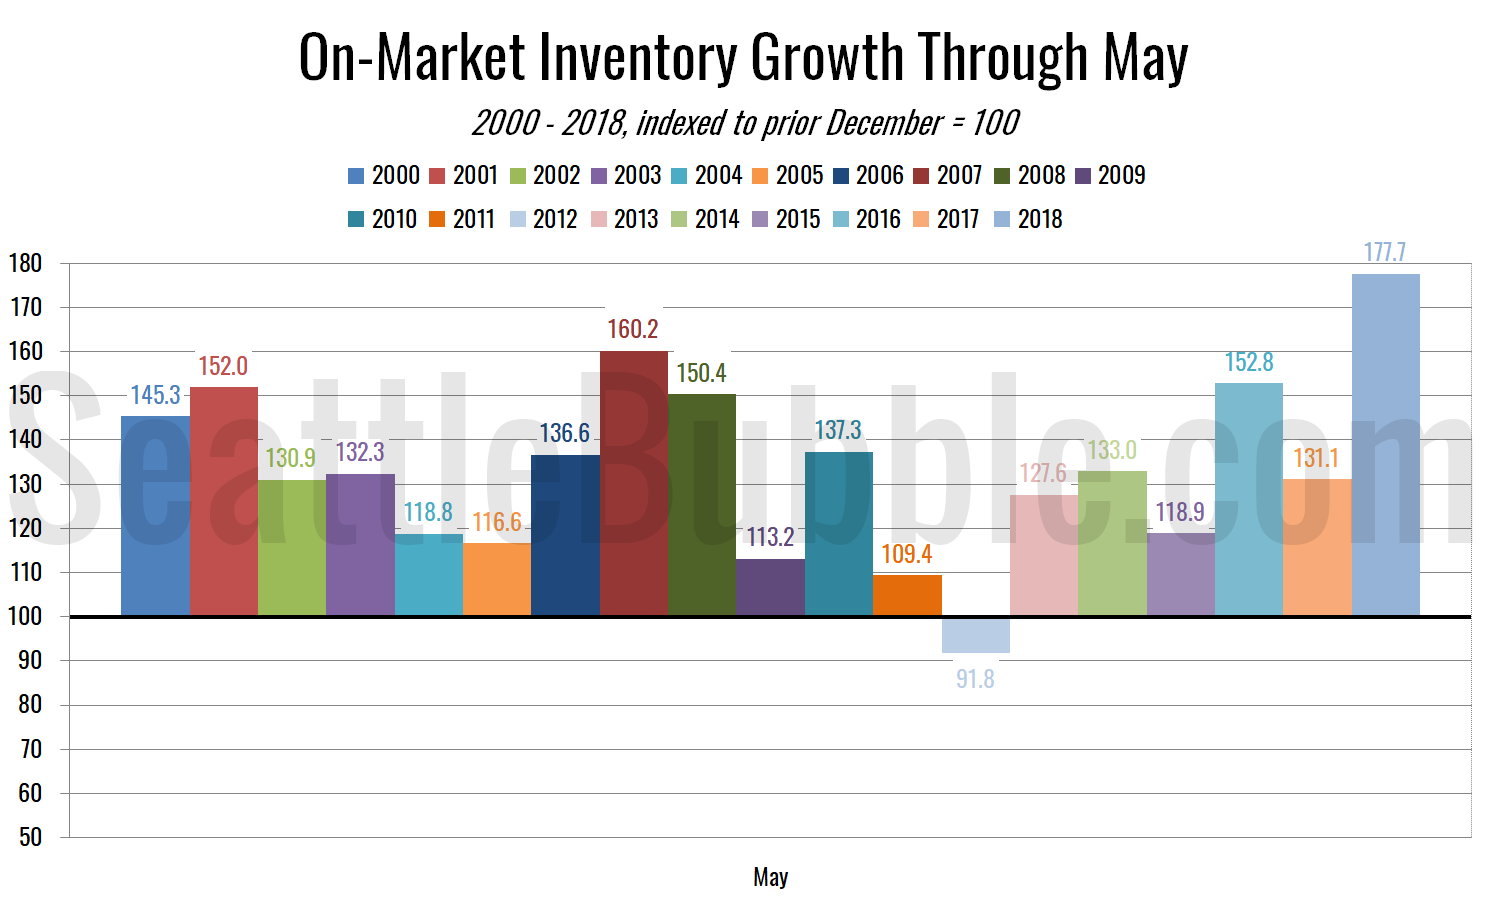 On-Market Inventory Growth Through June